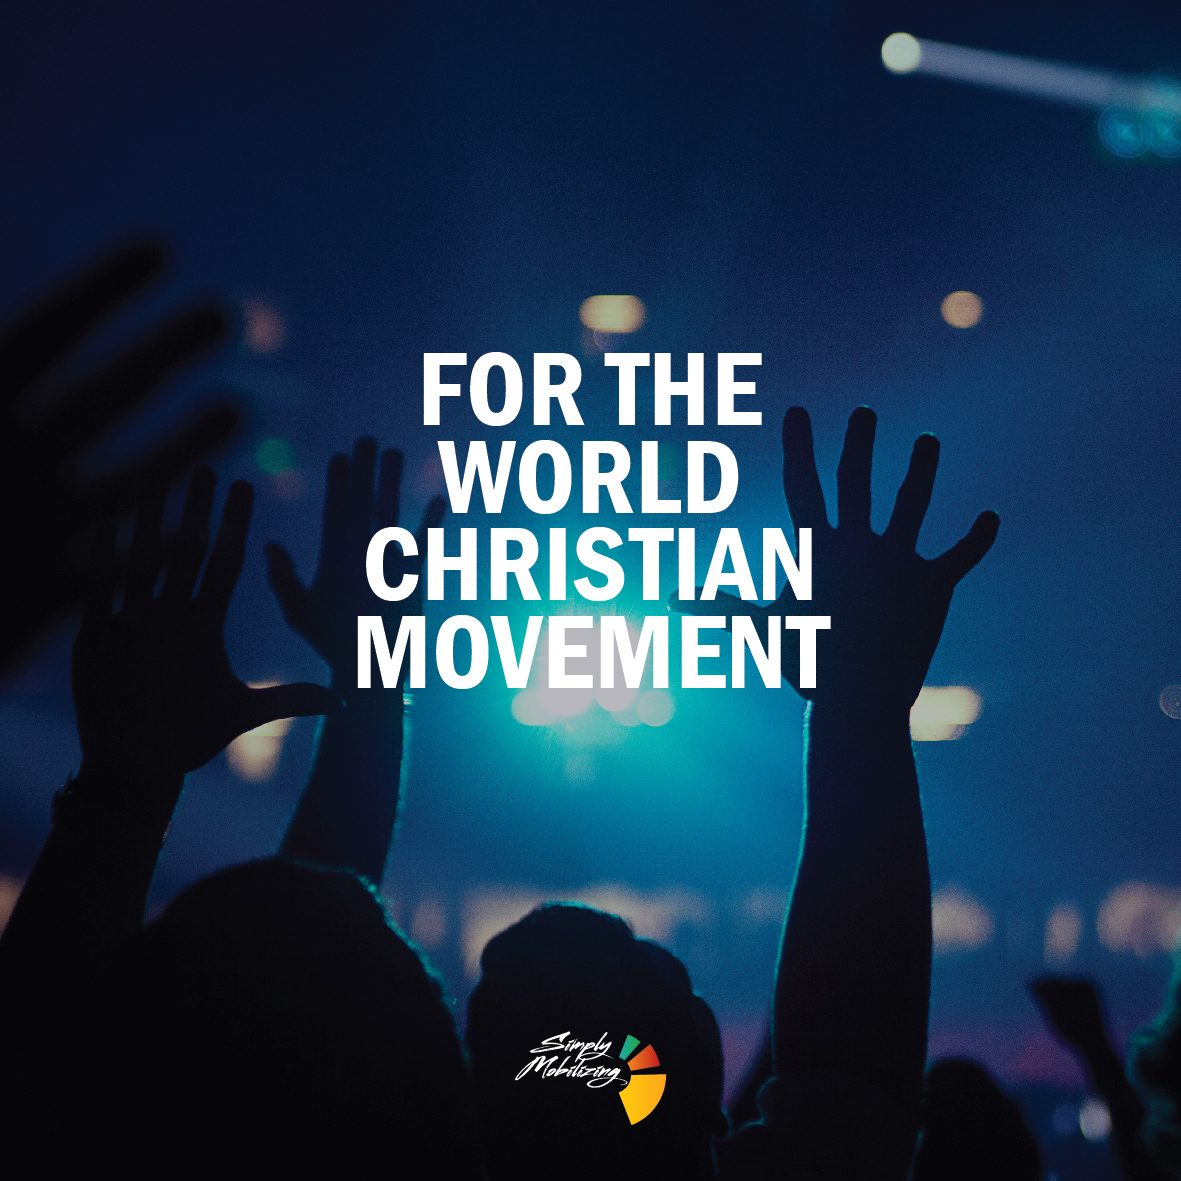 For the world Christian movement